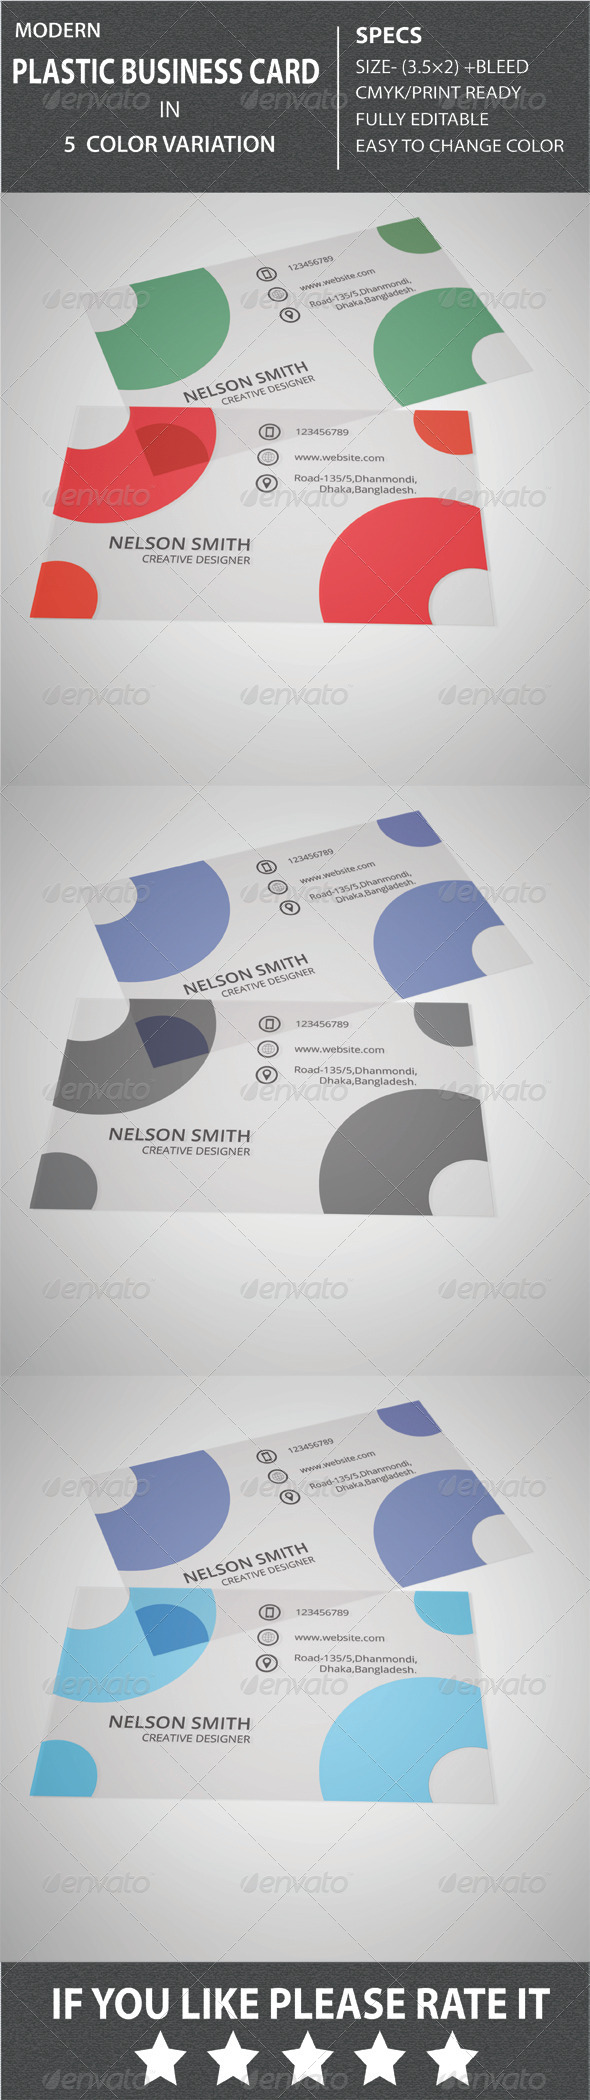 GraphicRiver Modern Plastic Business Card- 1 8563598